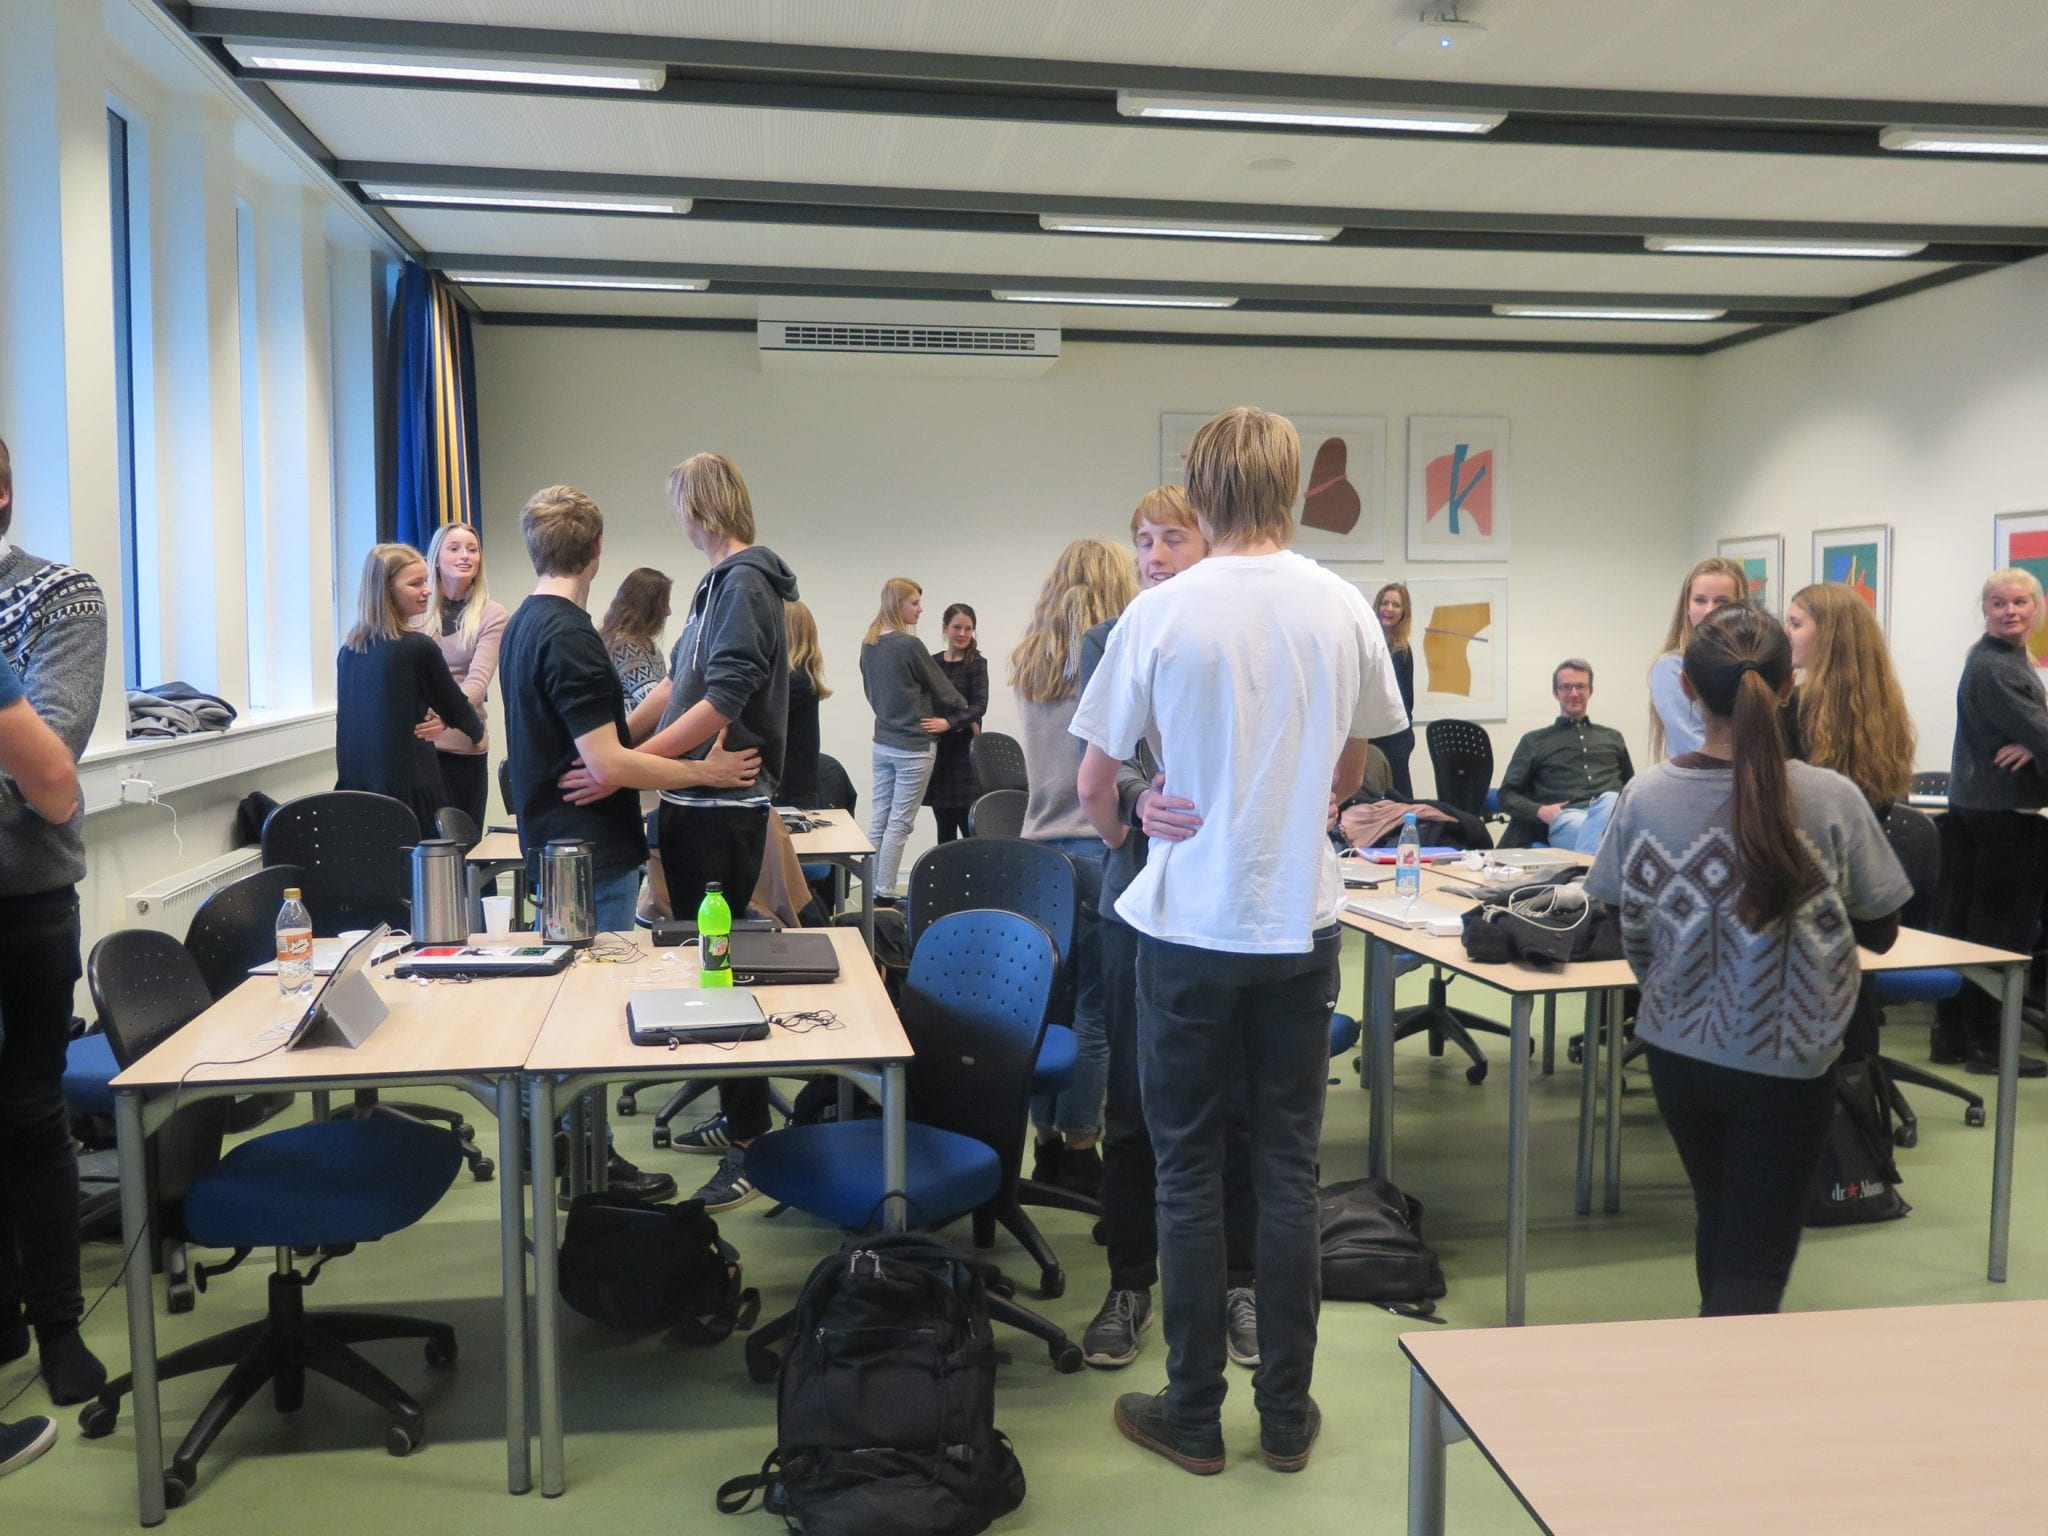 Speed dating events filippinerne